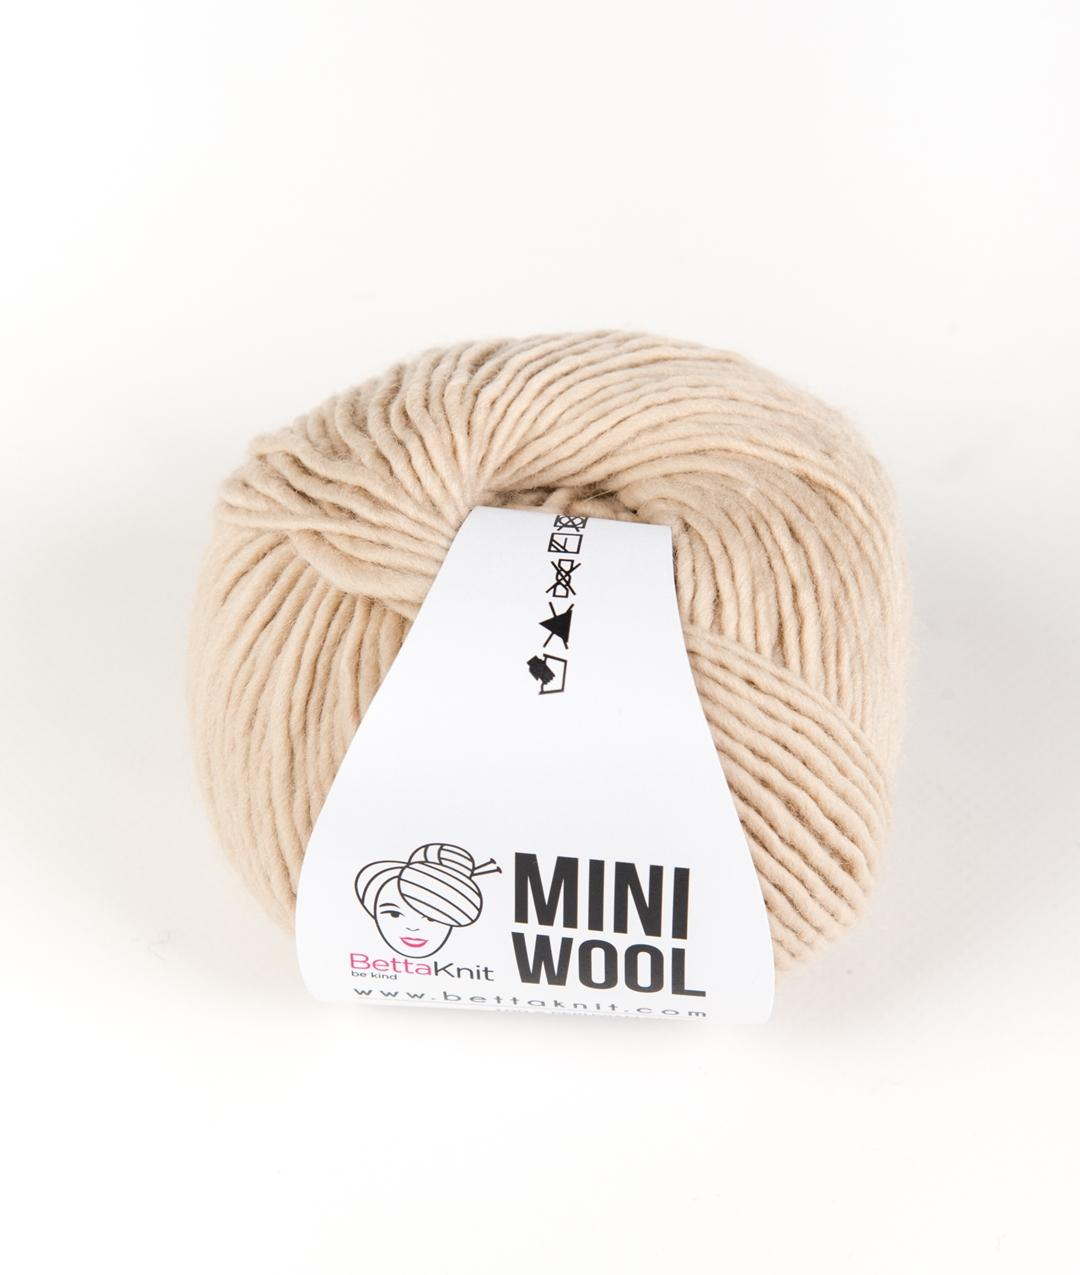 Yarns - Yarn pack without Needles  - Mini Wool Pack - 15 balls - 1